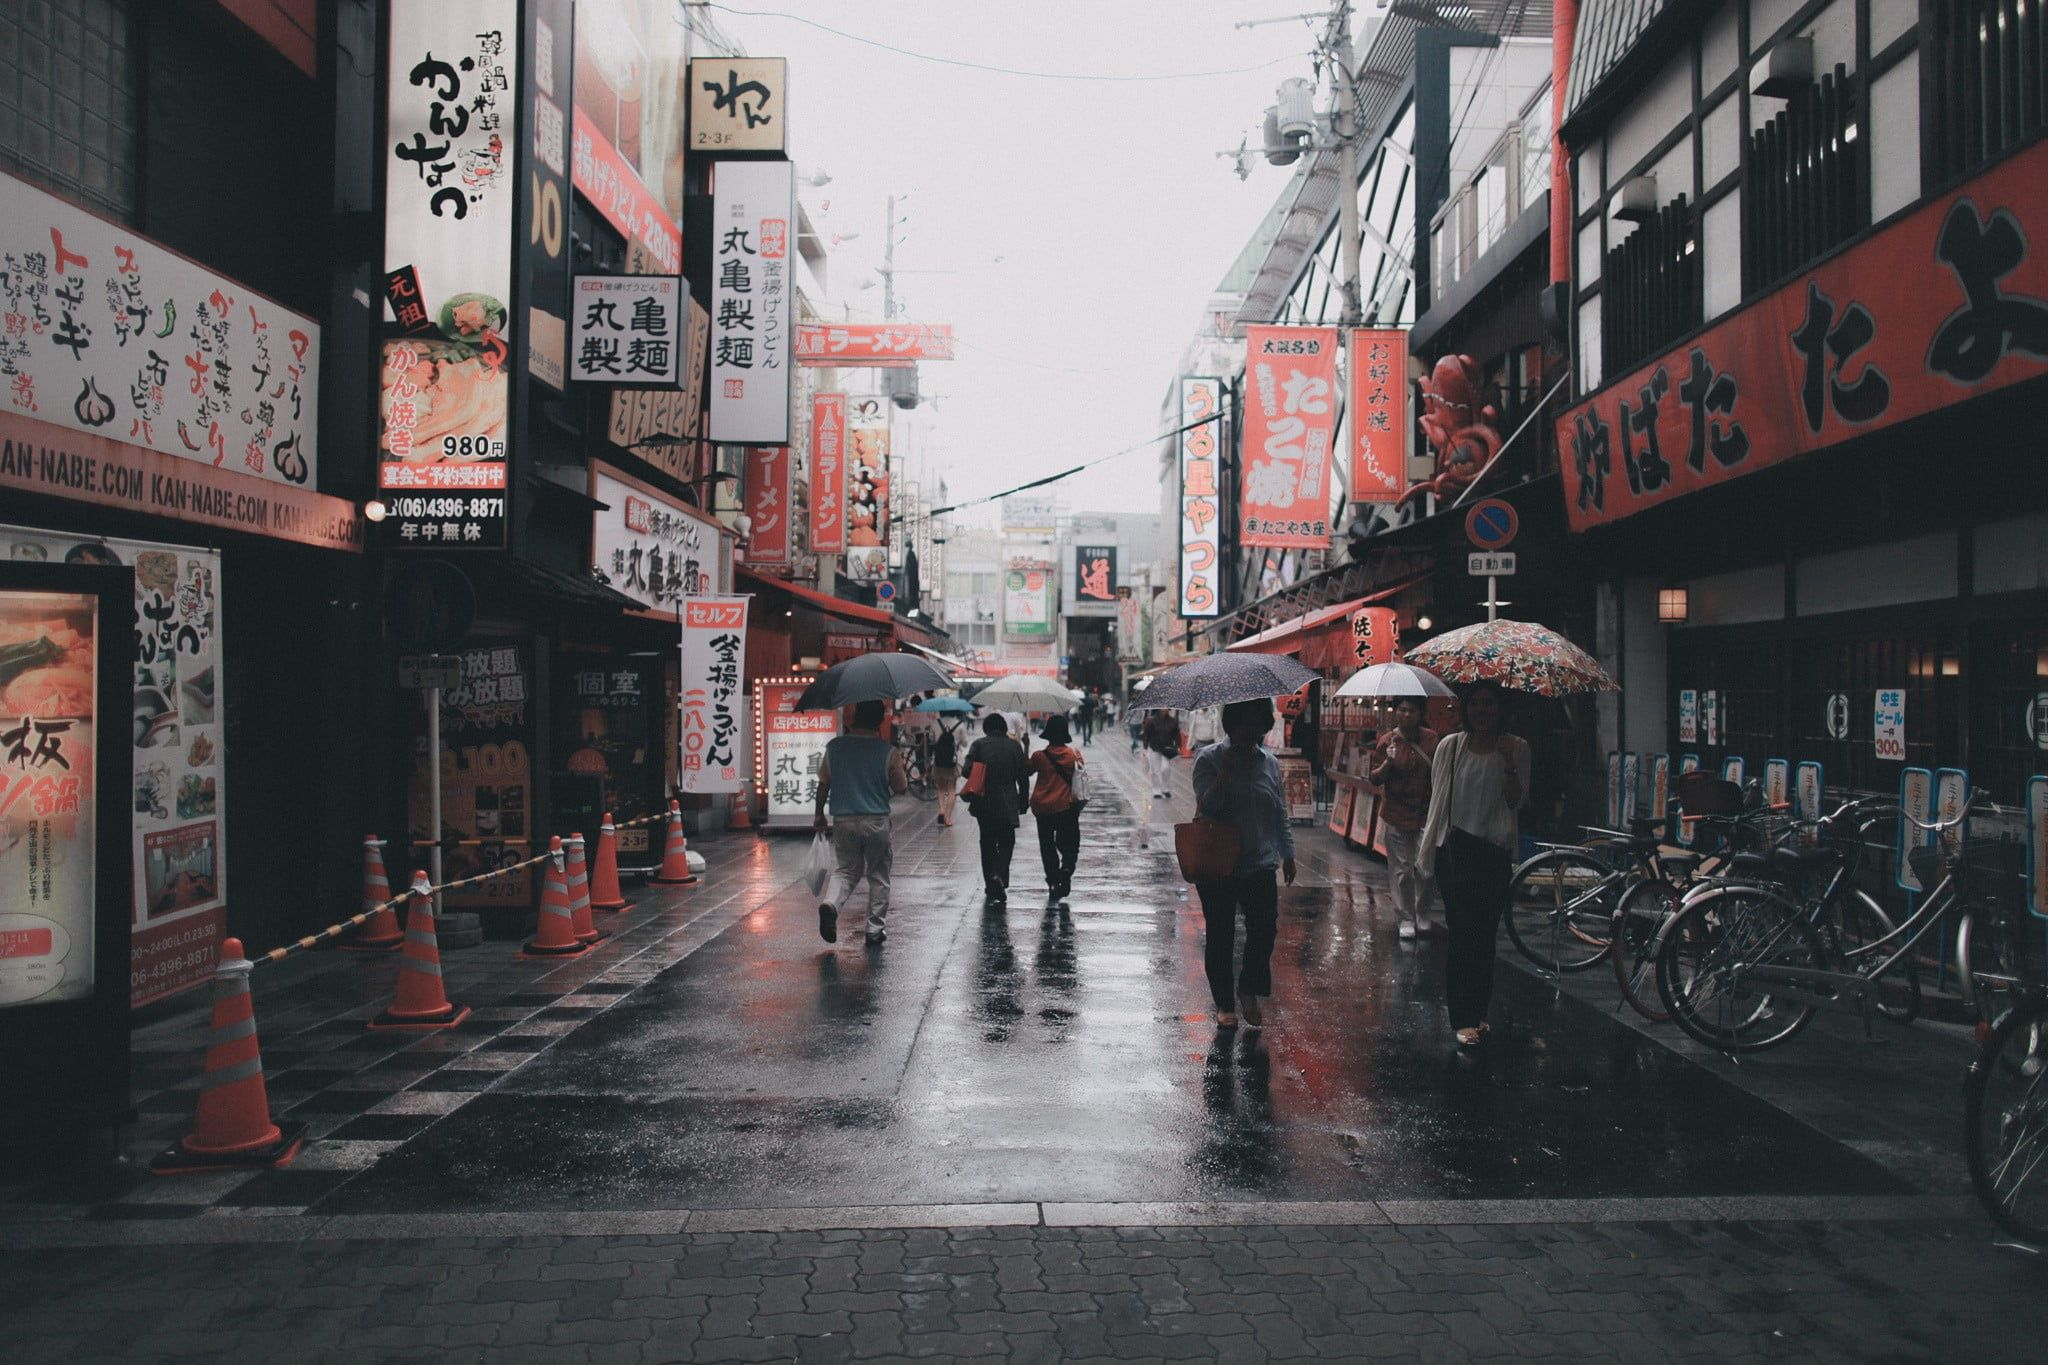 Black Umbrella Umbrella Asian Street Japan Japanese 1080p Wallpaper Hdwallp Aesthetic Desktop Wallpaper Computer Wallpaper Hd Black Aesthetic Wallpaper